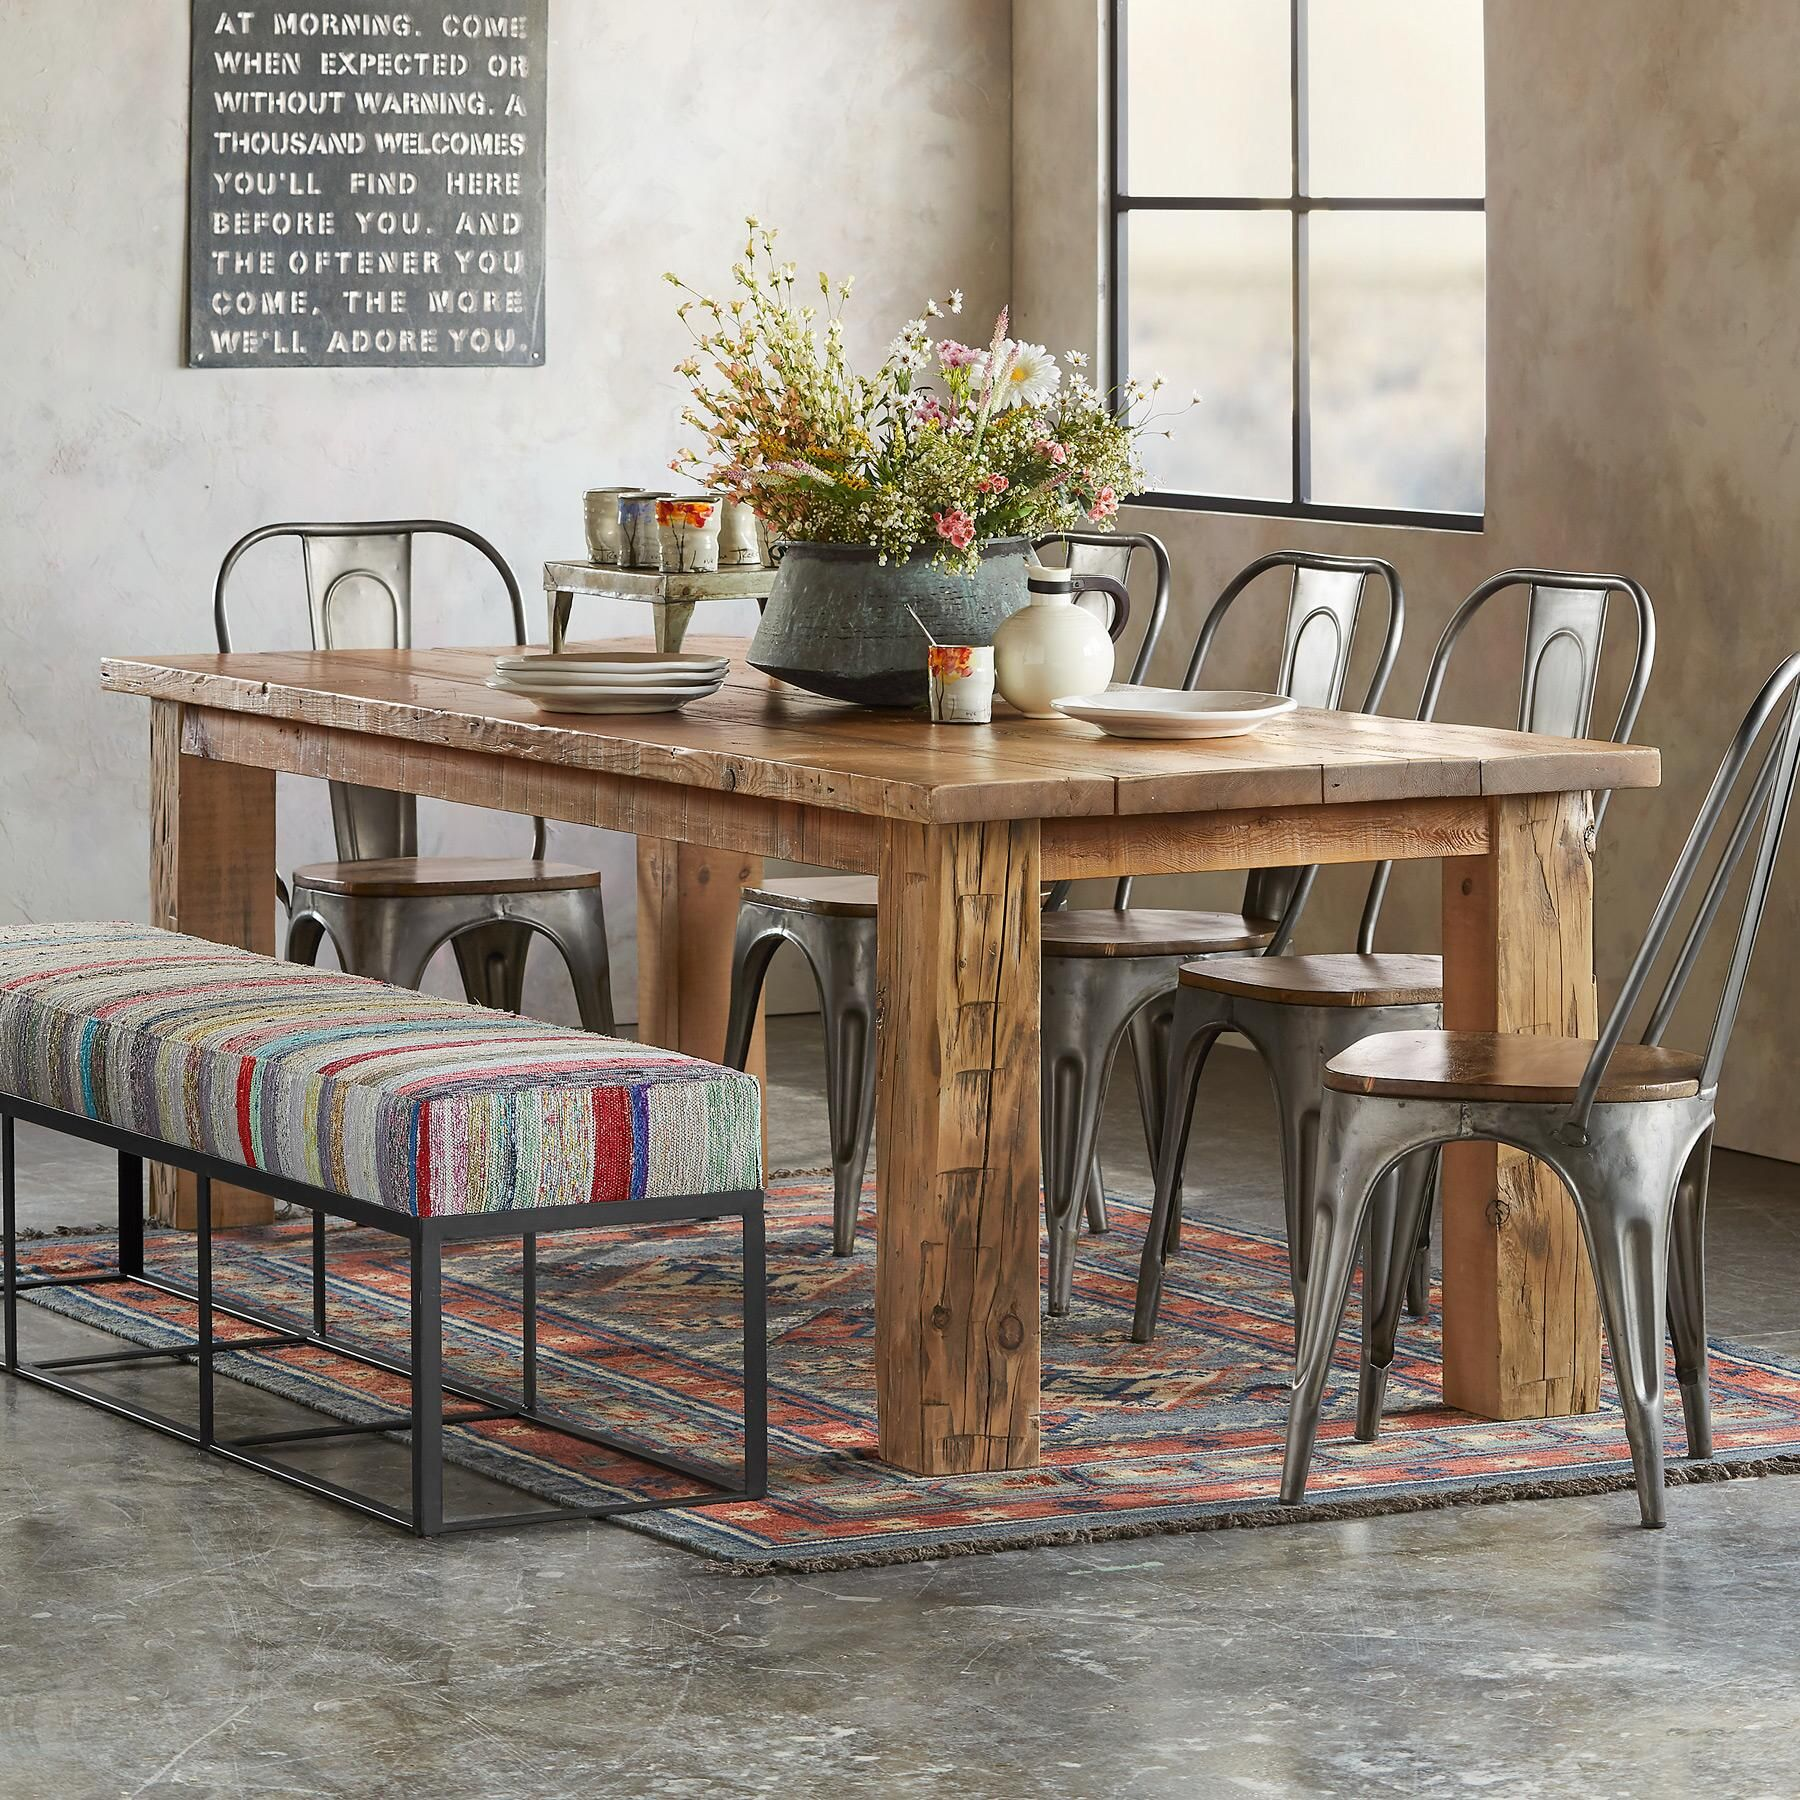 School House Plank Dining Table  Recycled Pine Floor Boards From Fair Plank Dining Room Table Review